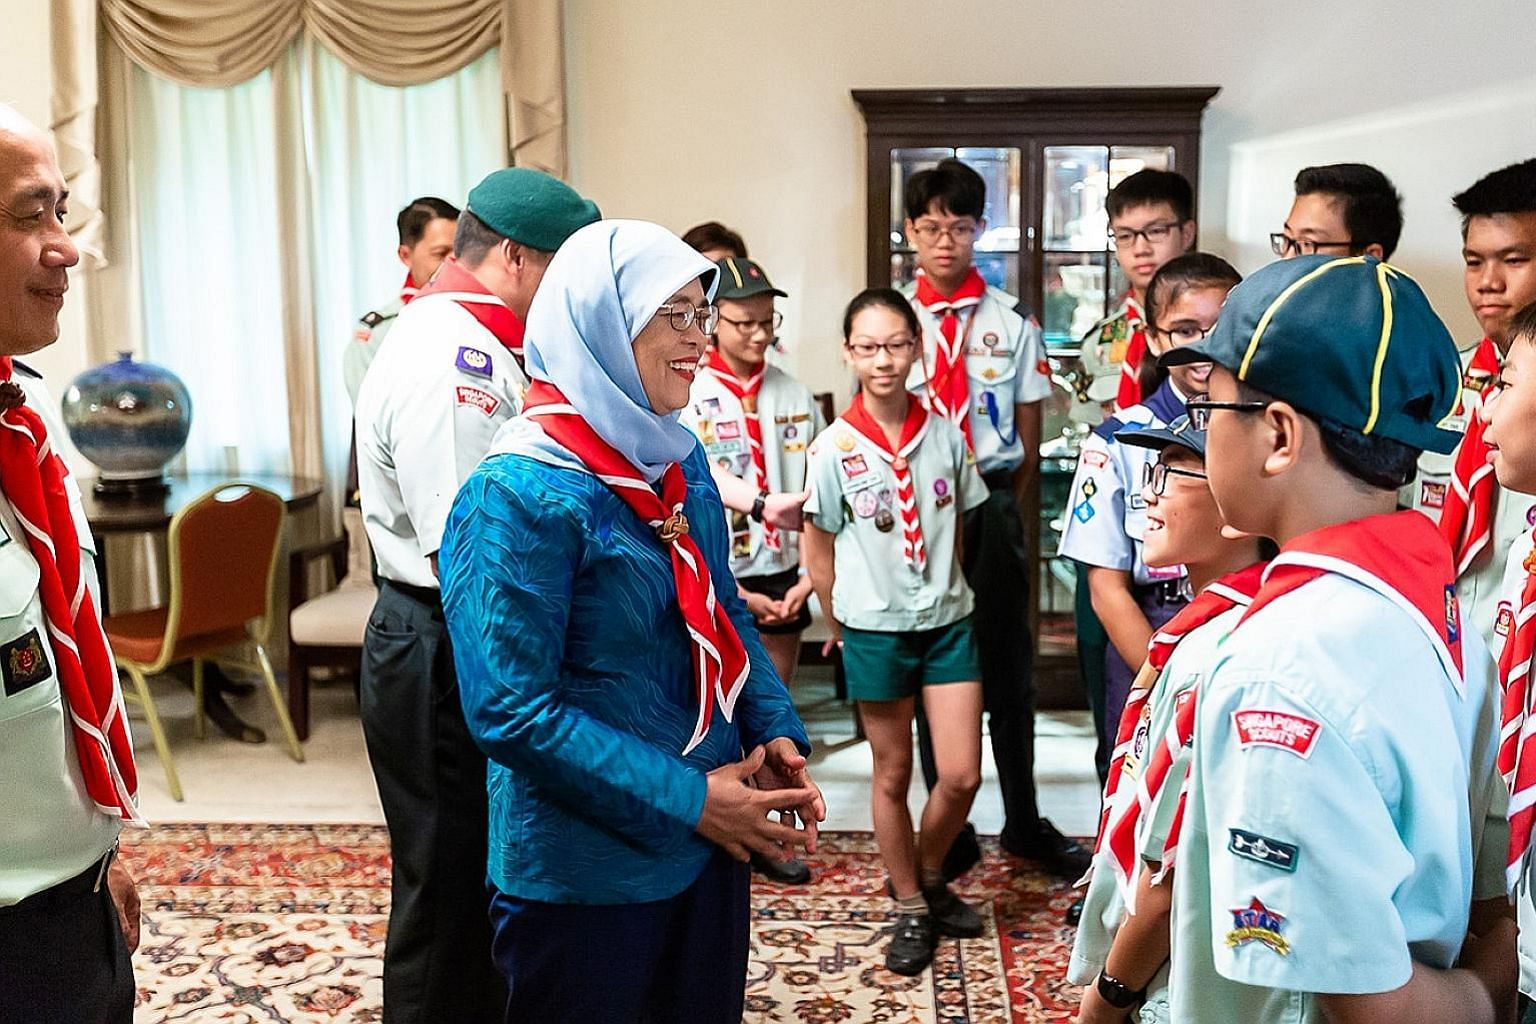 President Halimah Yacob launched the annual Scout Job Week at the Istana Villa yesterday. The objective of Scout Job Week is to ingrain a hardworking spirit and teach scouts to appreciate the value of honest work.